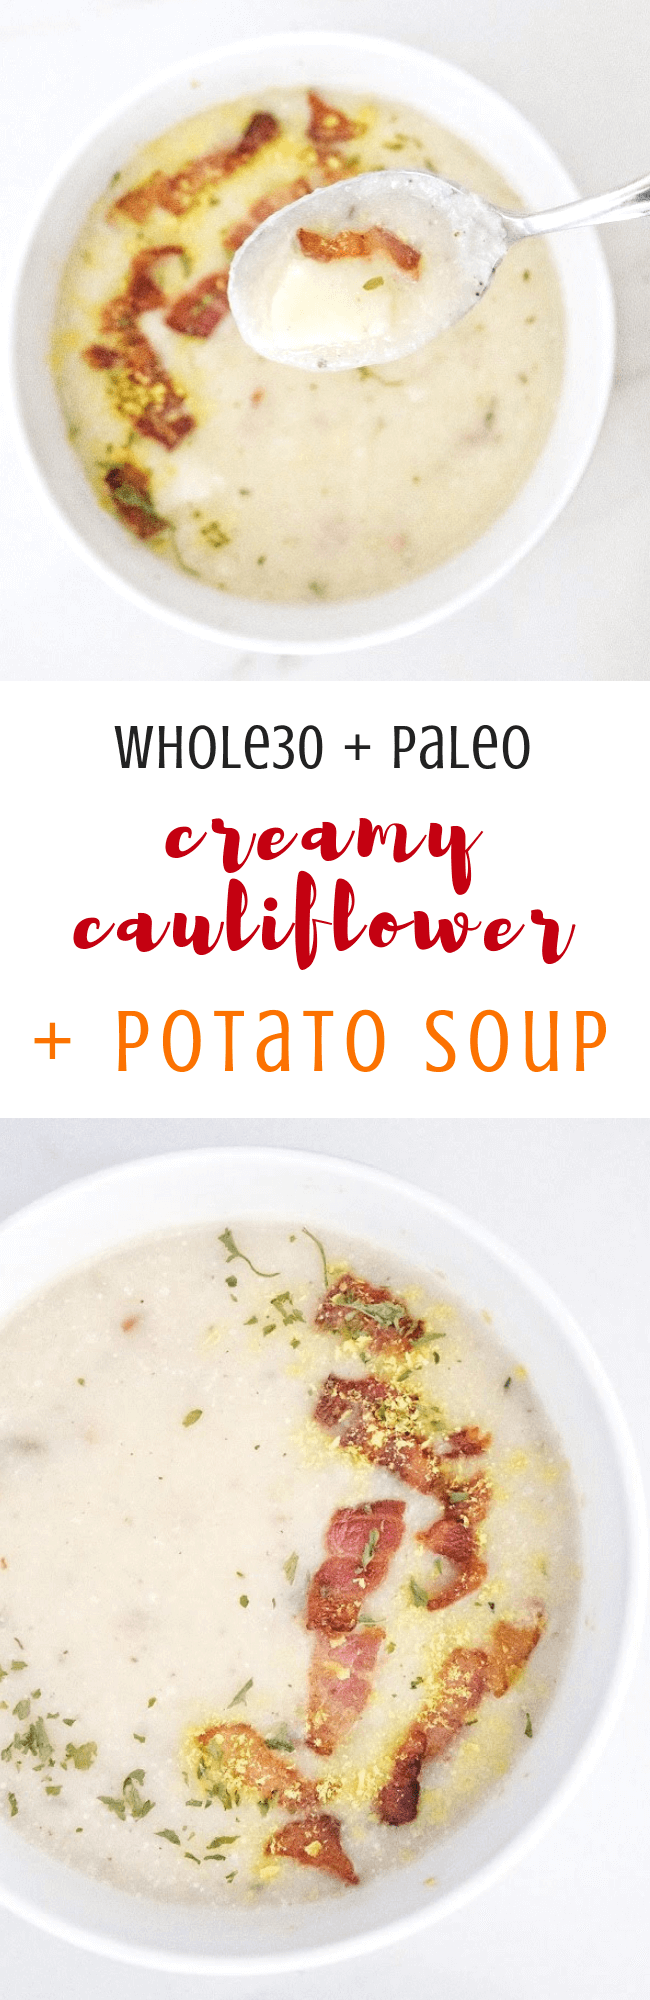 Whole30 Creamy Cauliflower + Potato Soup (Dairy Free, Paleo, Gluten Free) (1).png